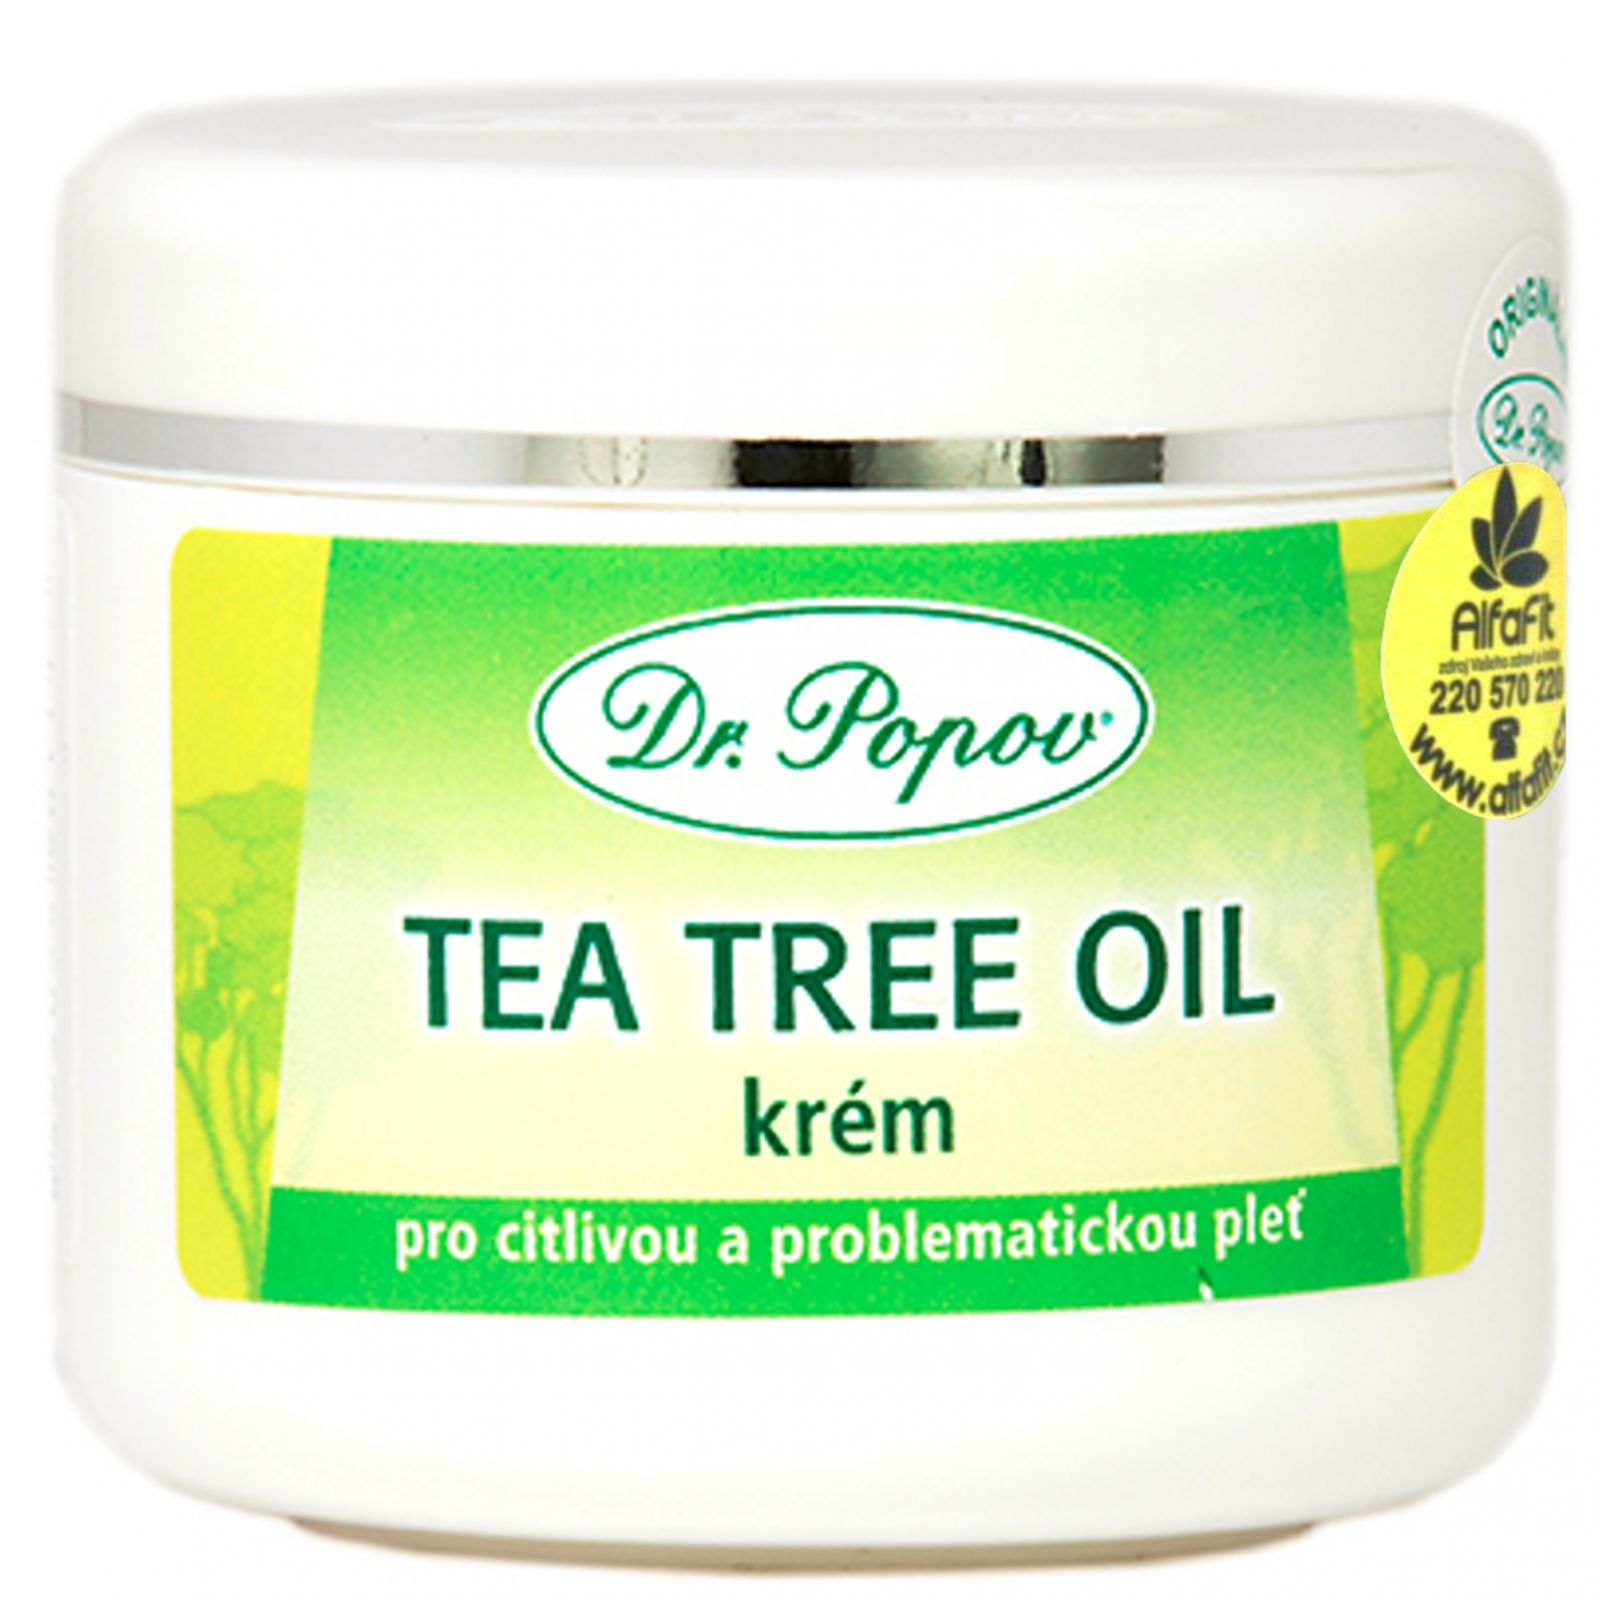 Dr. Popov Tea tree oil 50 ml